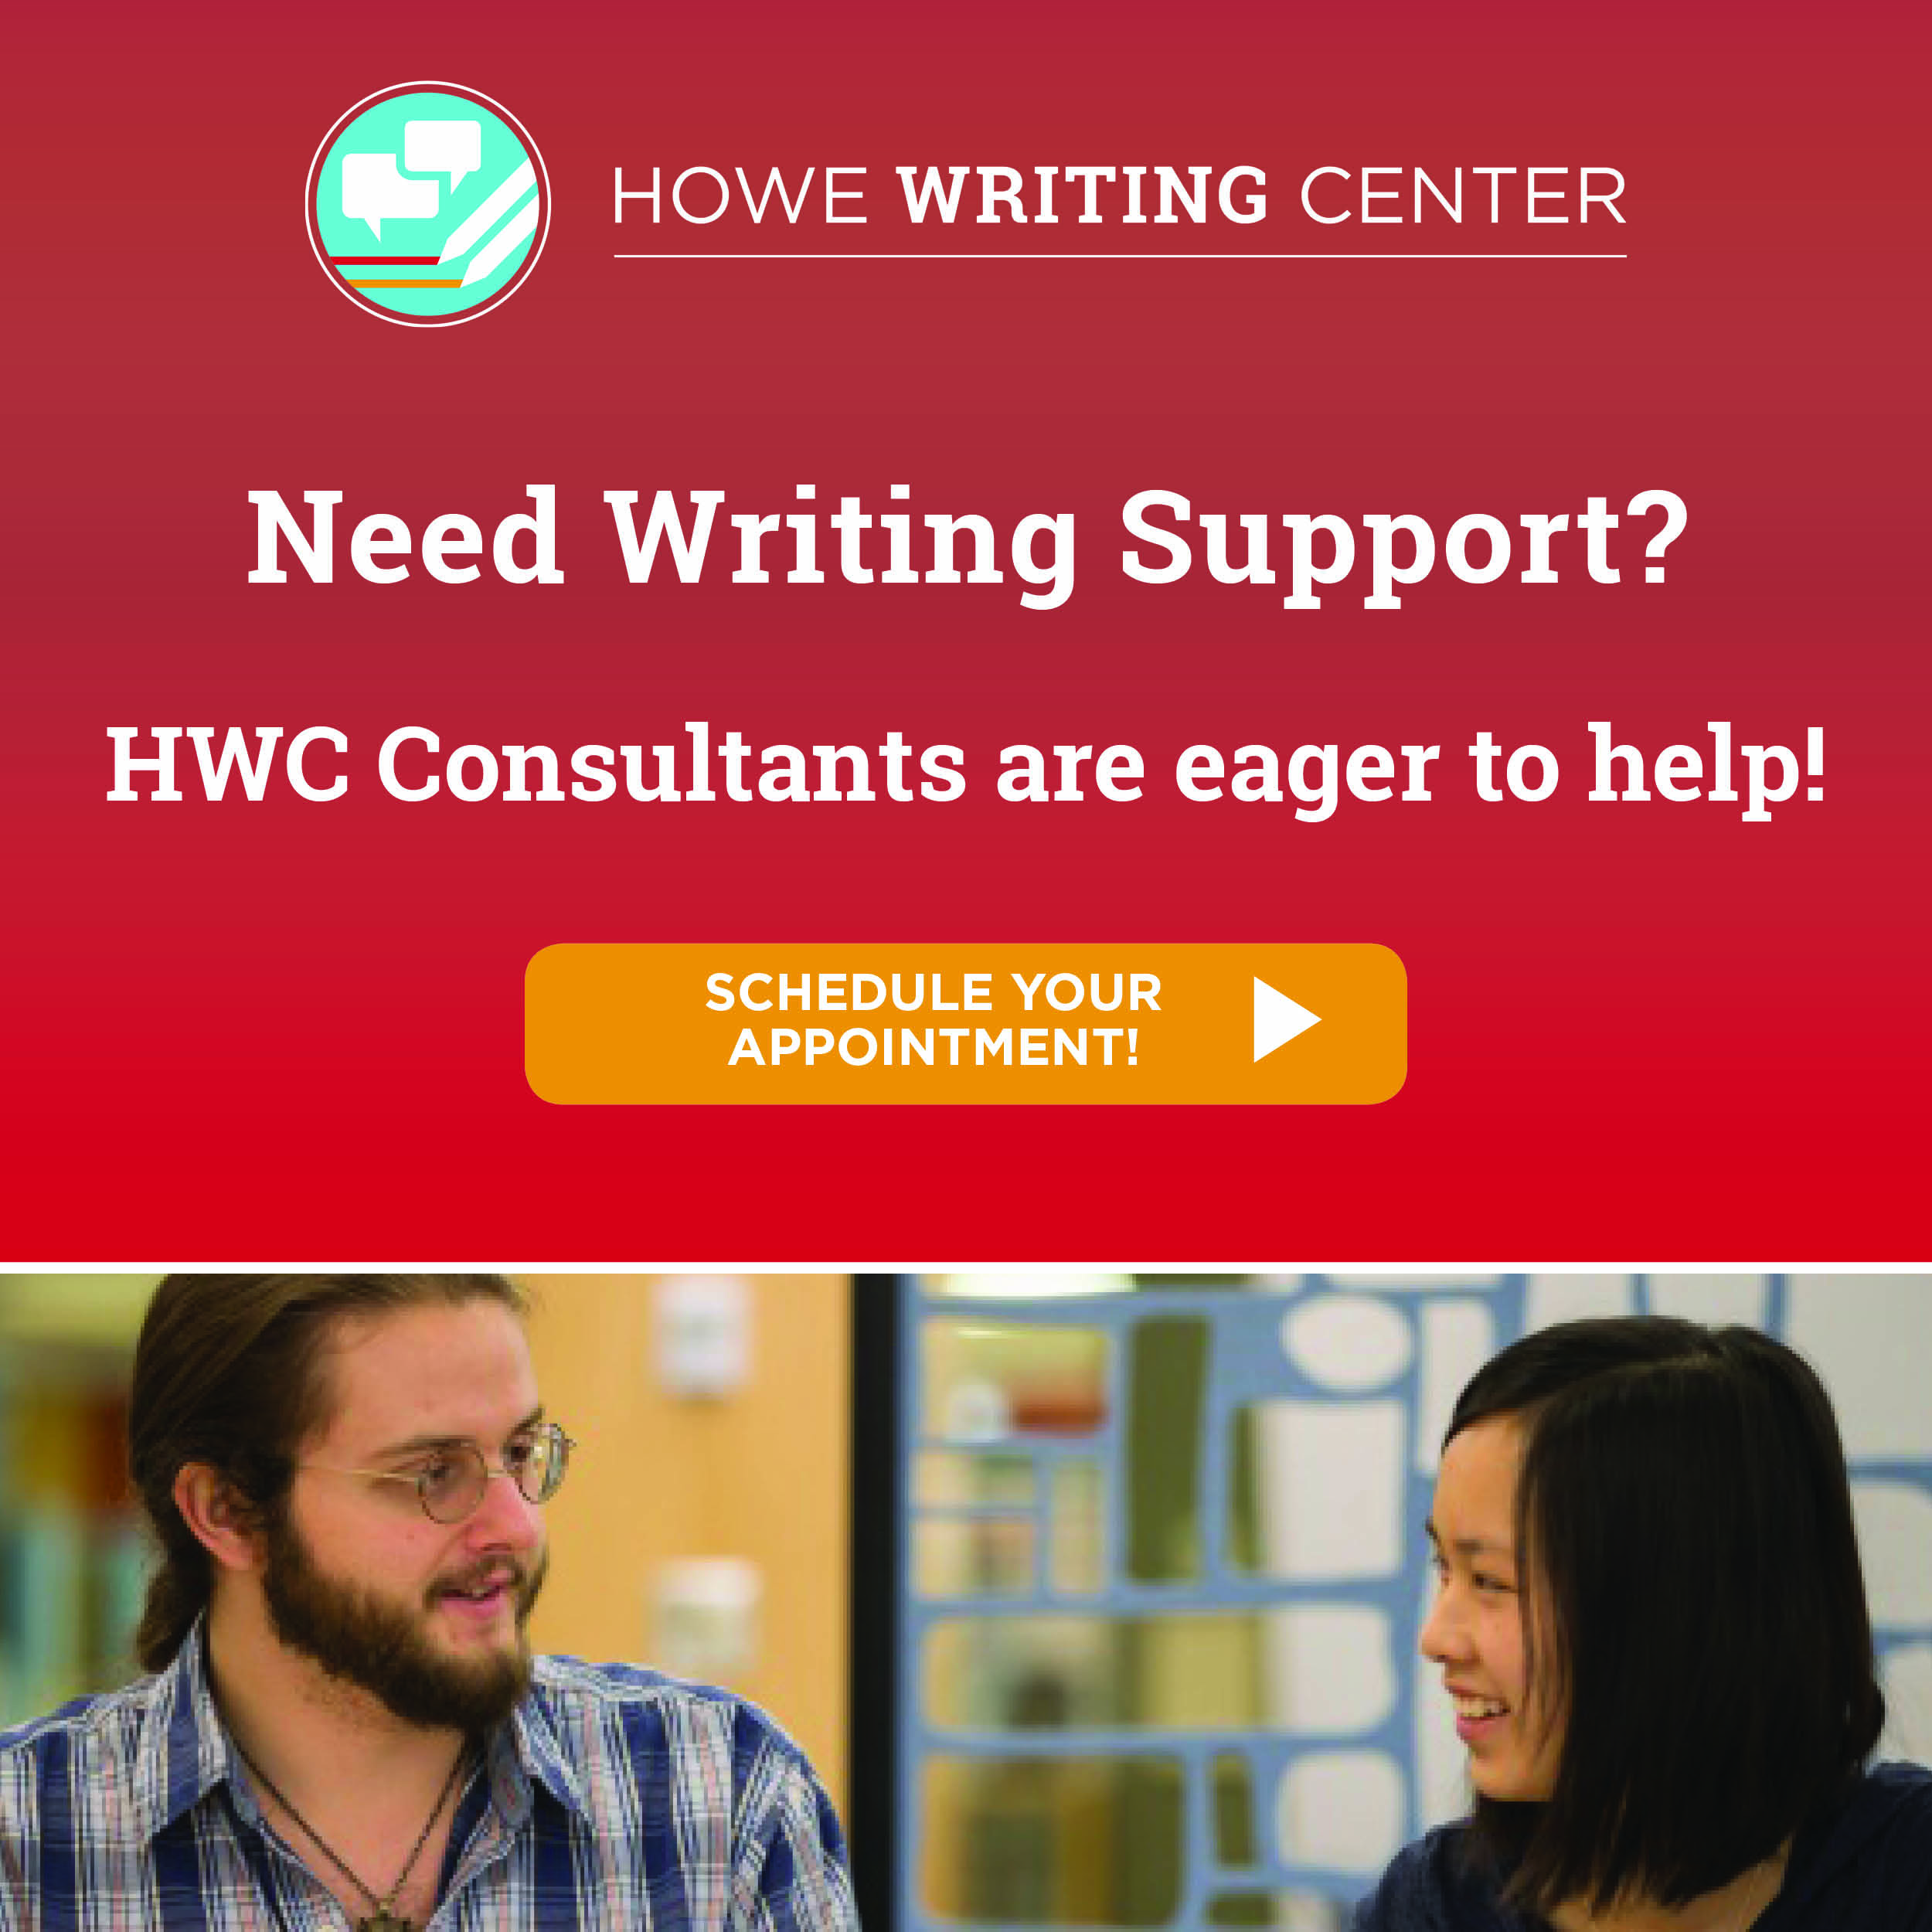 Howe Writing Center. Need Writing Support? HWC Consultants are eager to help! Click to schedule your appointment.